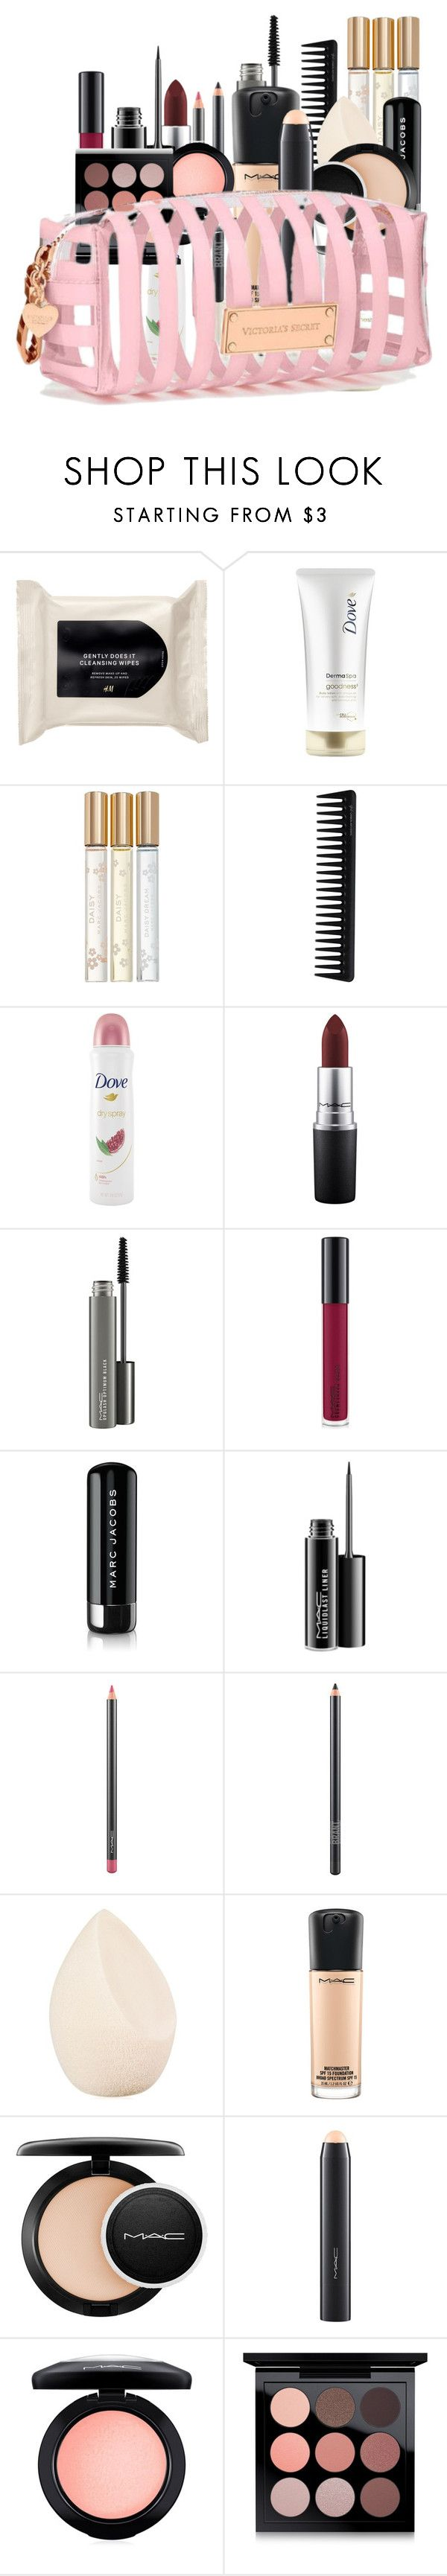 """Make-up Essentials"" by annahlysis on Polyvore featuring beauty, H&M, Dove, Marc Jacobs, GHD, MAC Cosmetics, Christian Dior and Victoria's Secret"